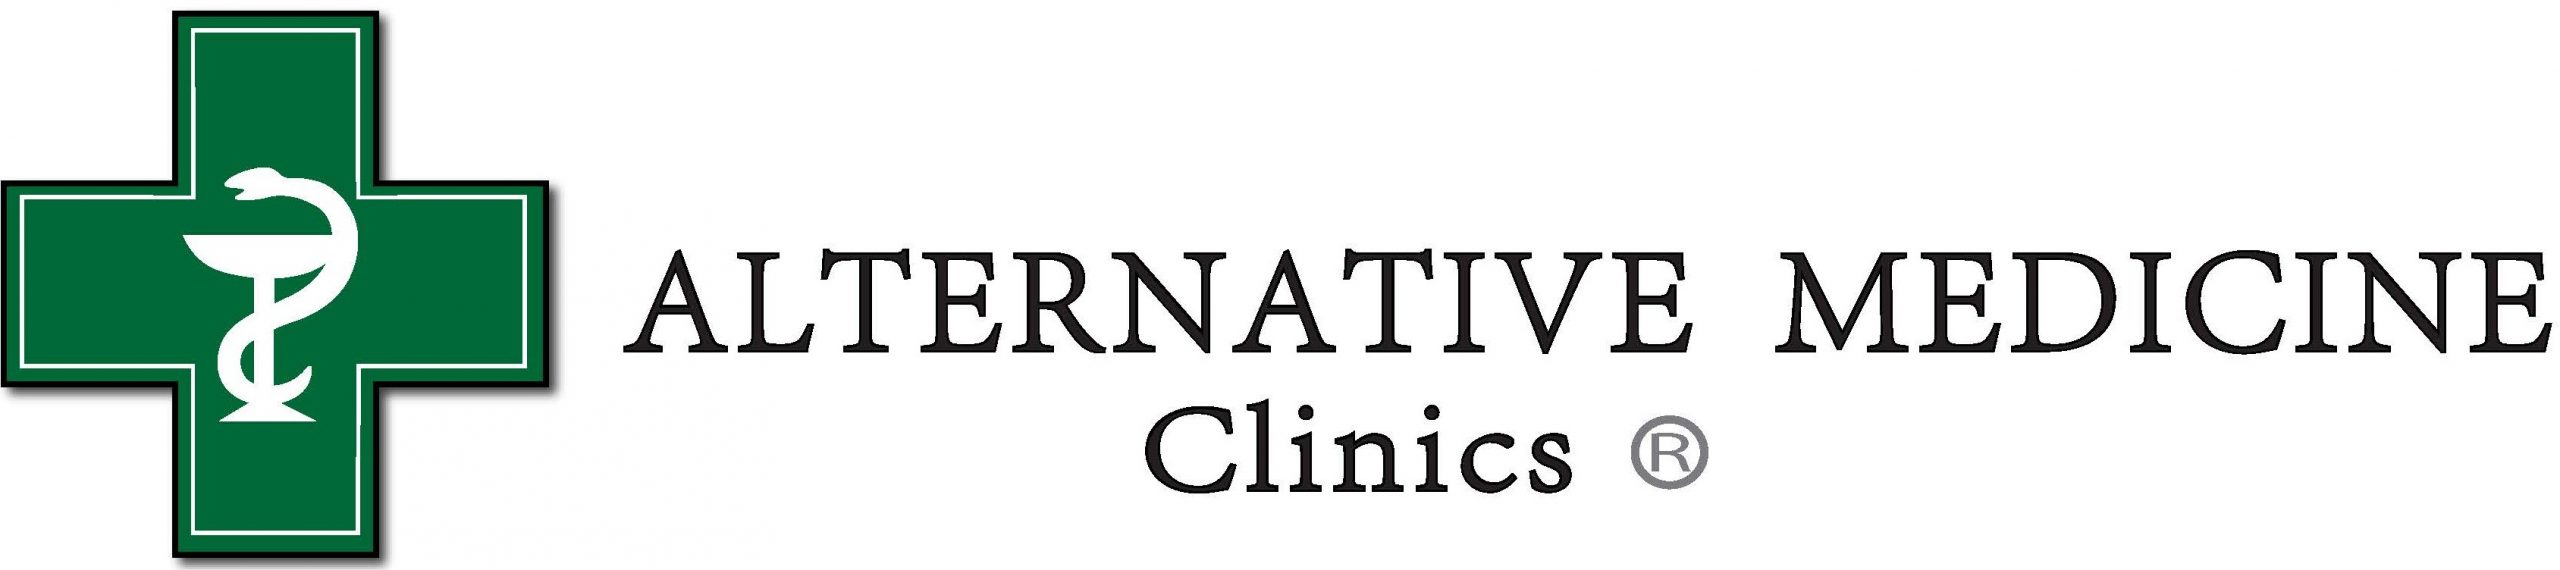 Alternative Medicine Clinics